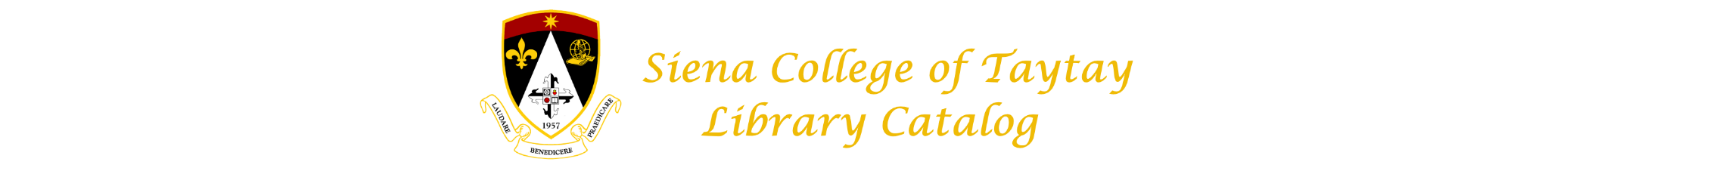 Siena College of Taytay Library Catalog